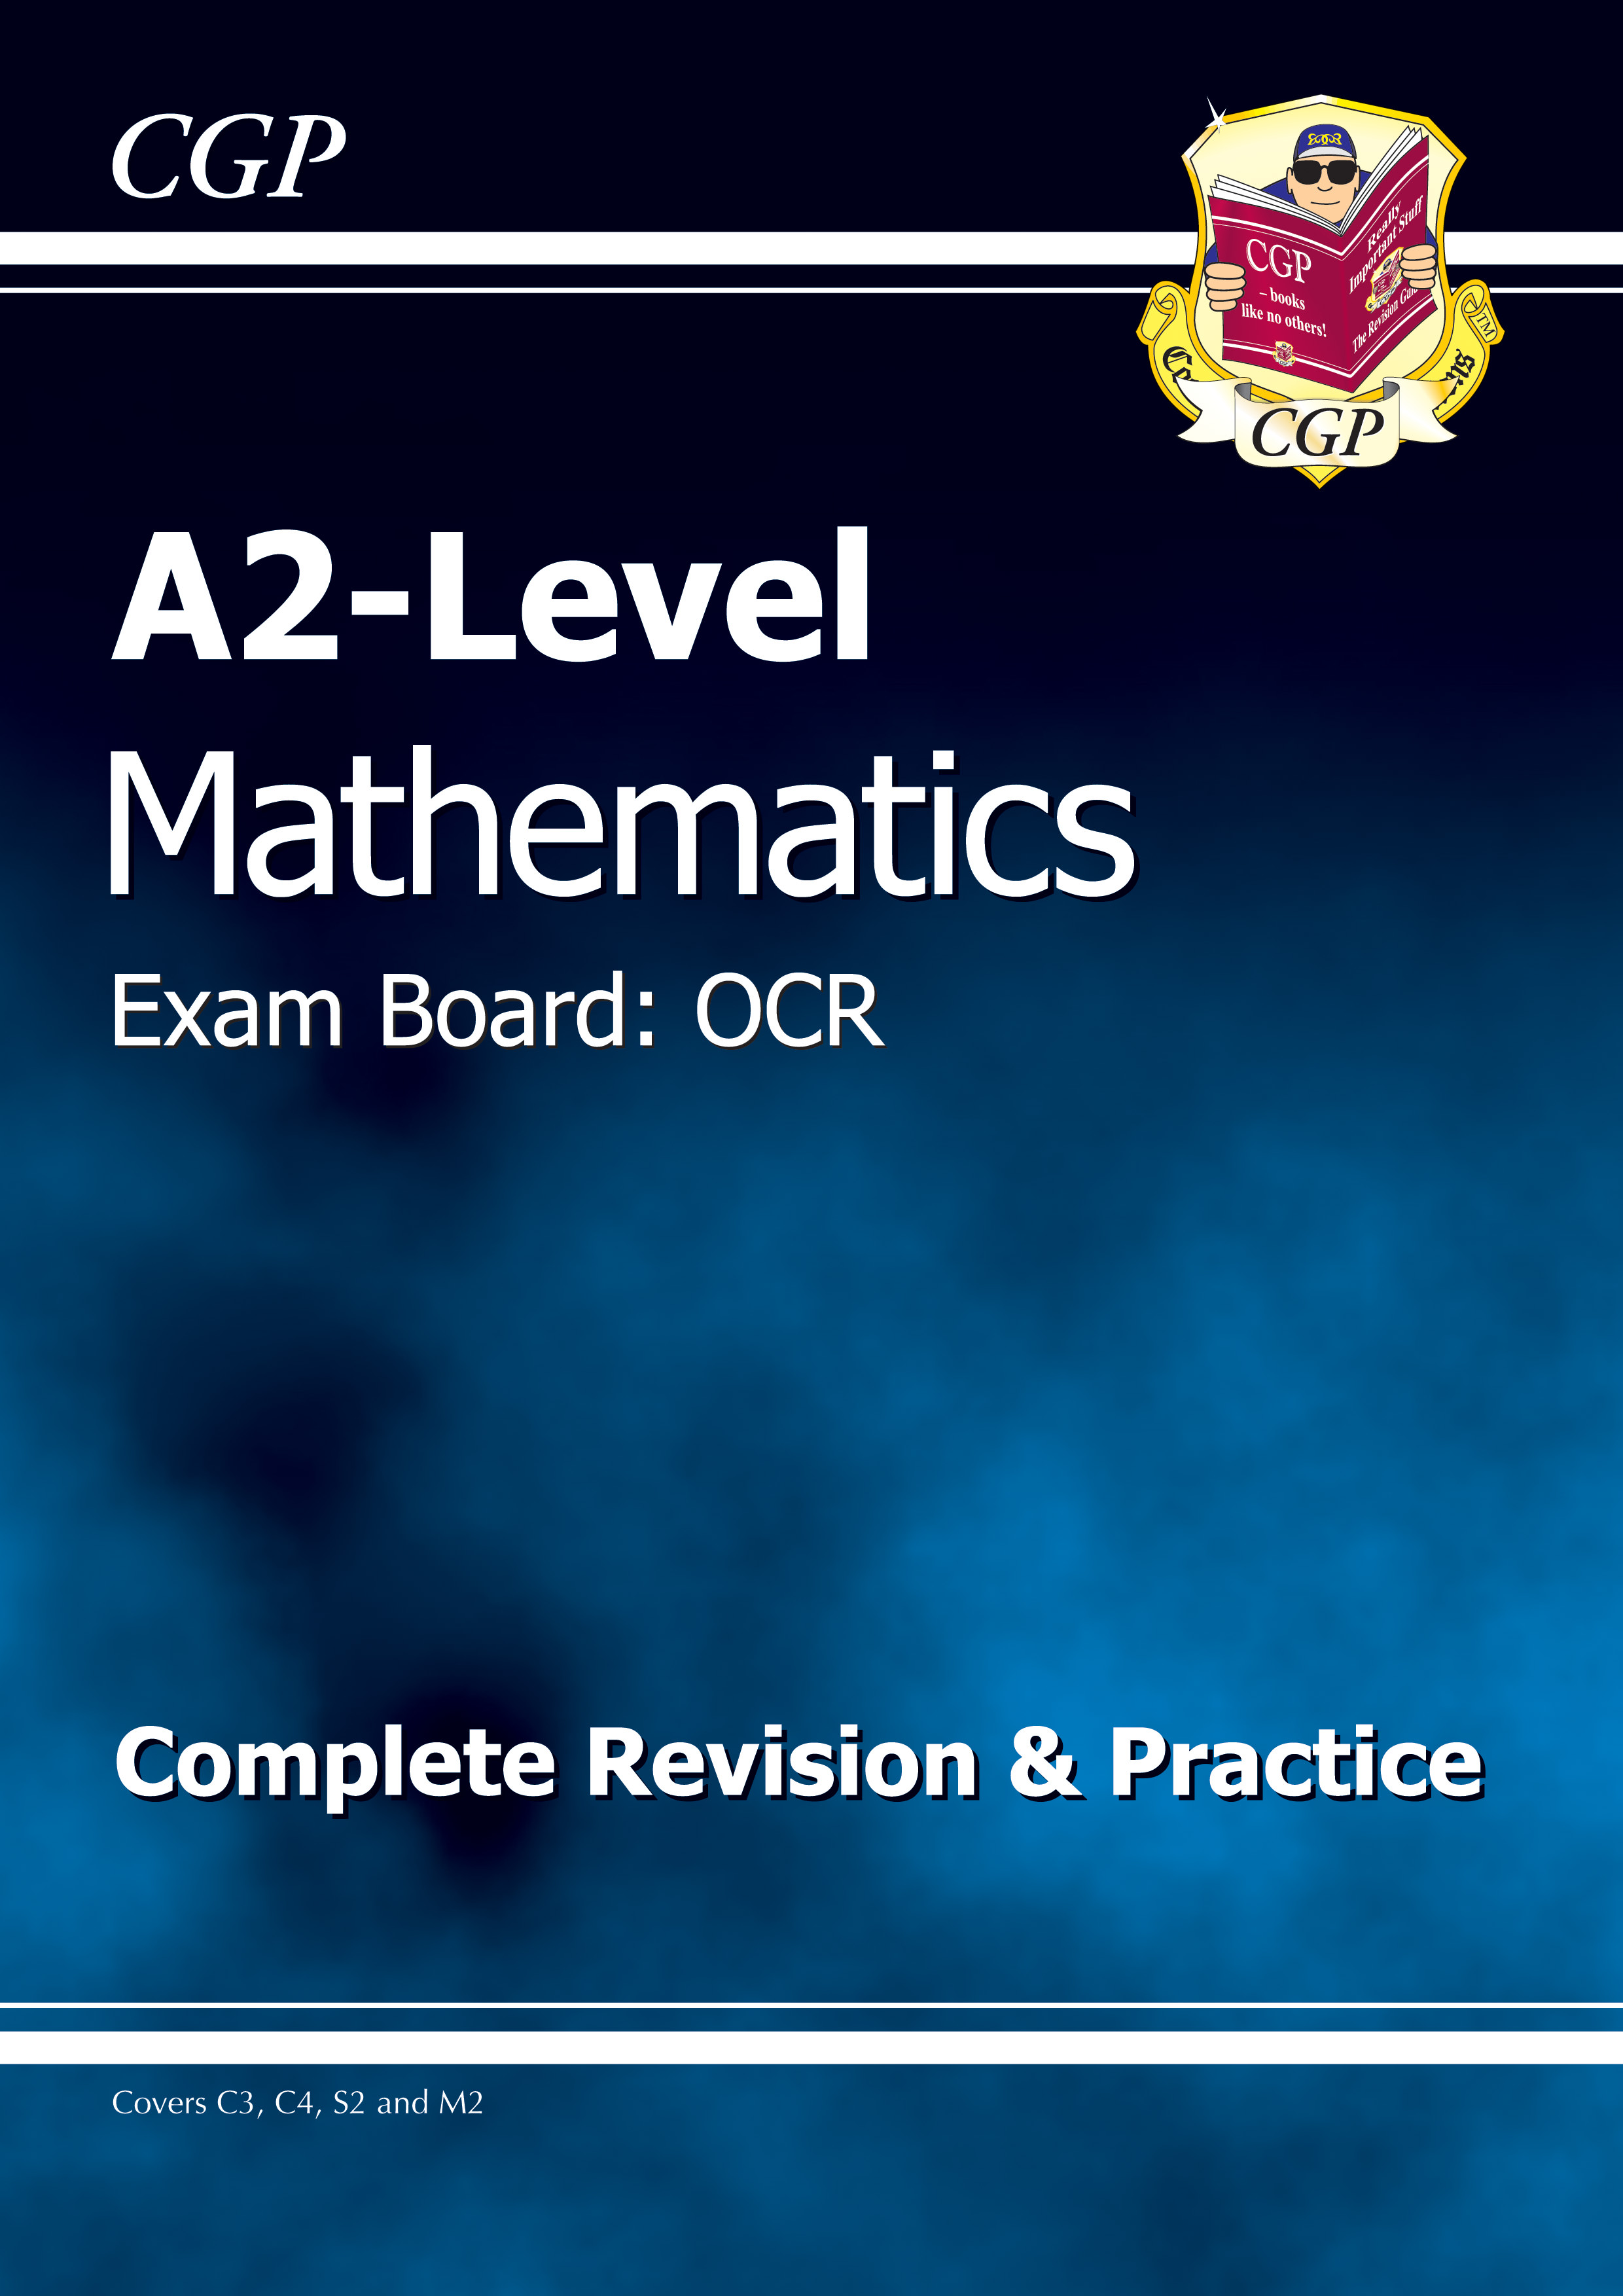 MRAR61DK - A2-Level Maths OCR Complete Revision & Practice